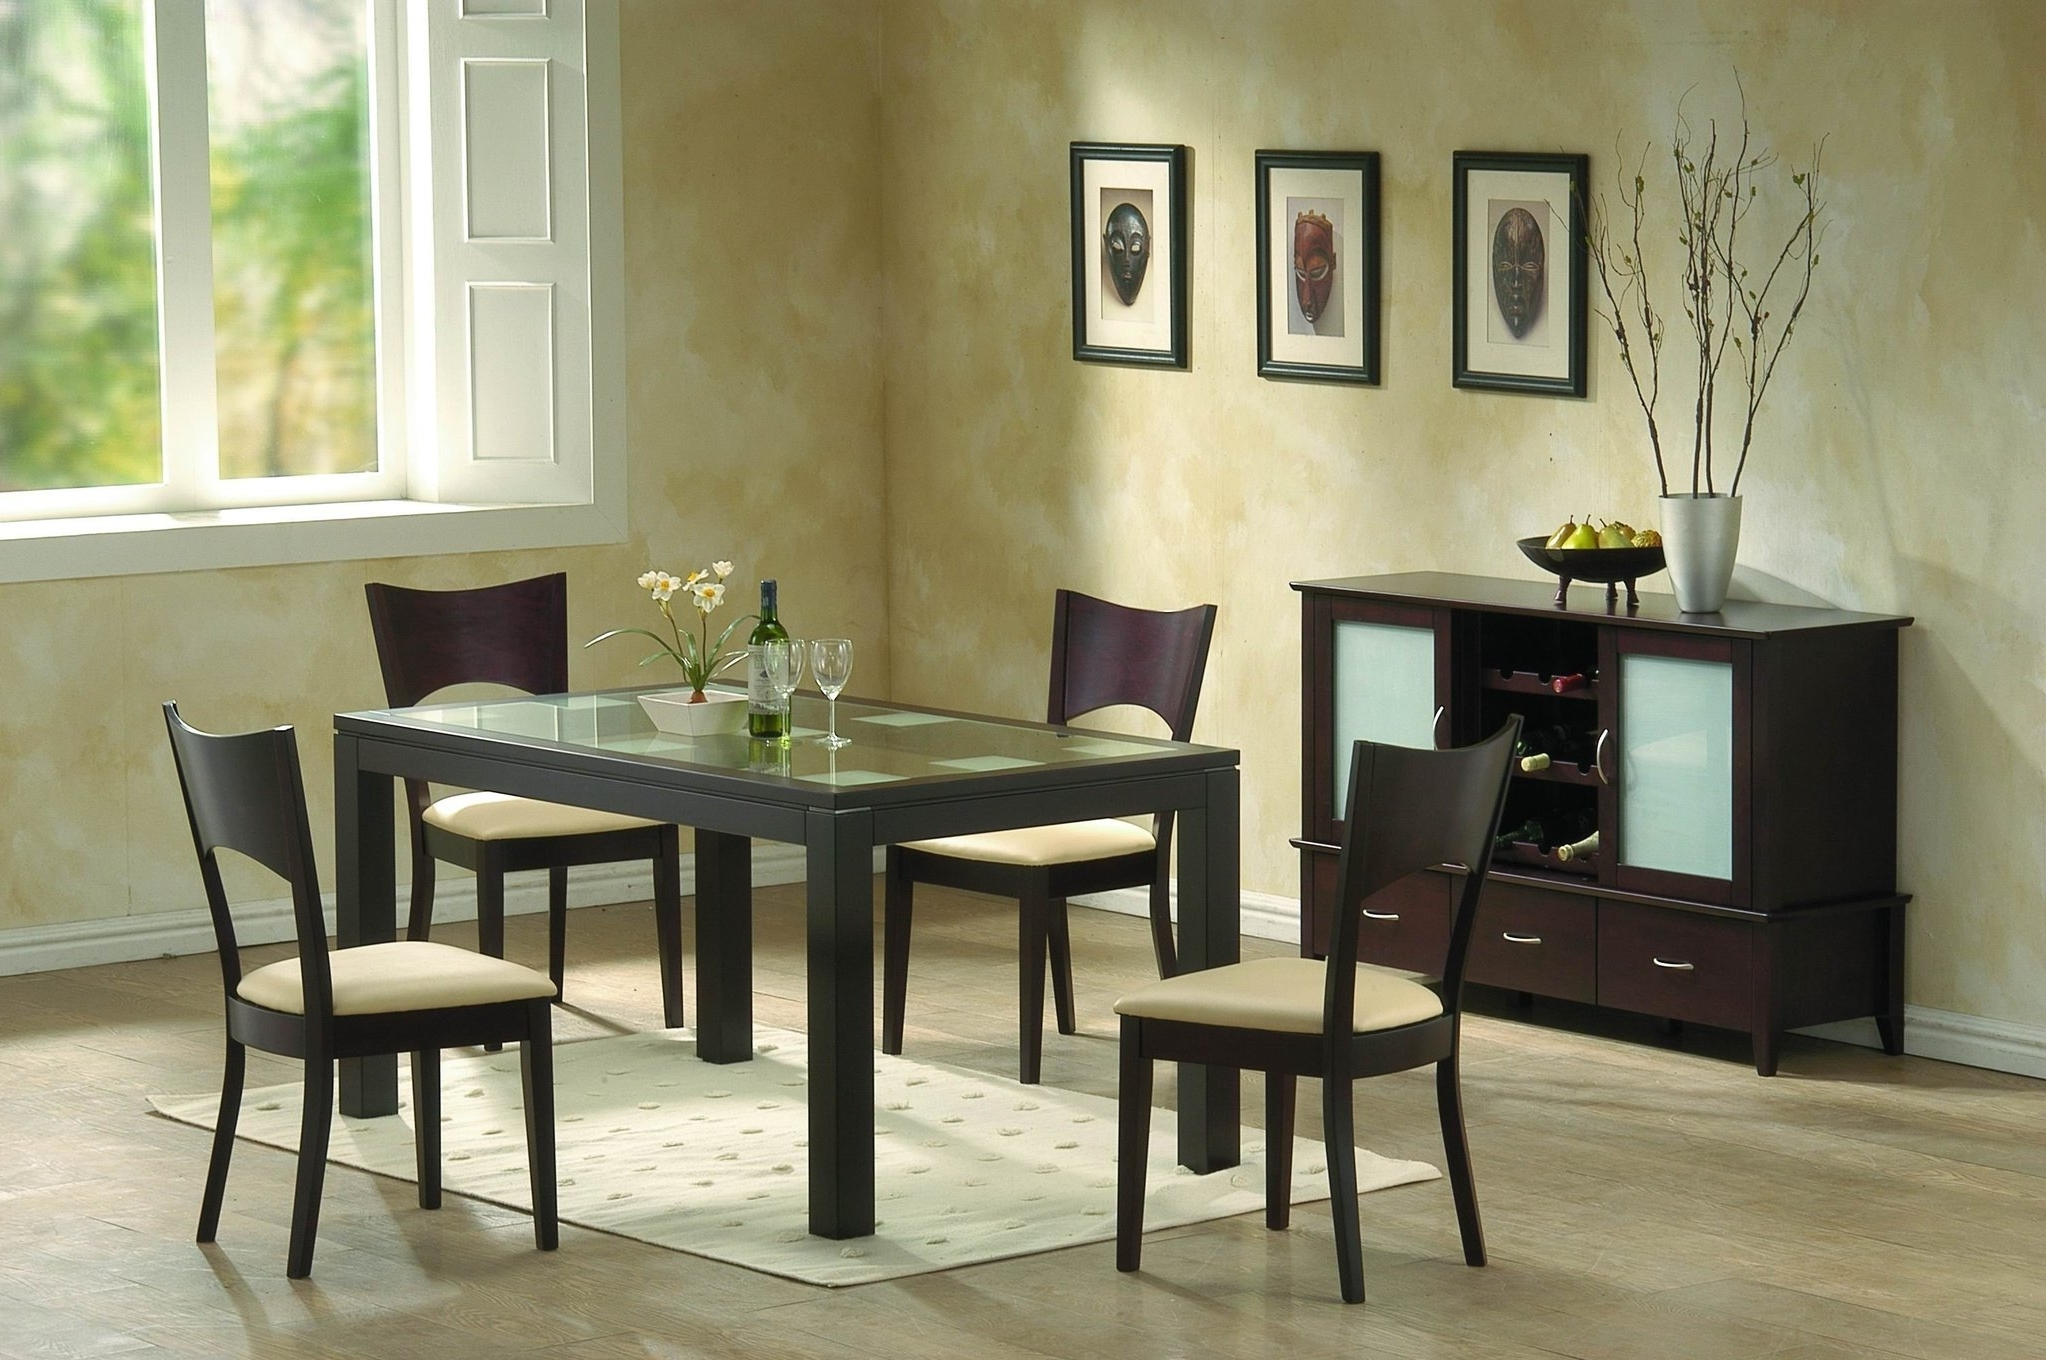 Current Modern Dining Room Furniture – Frosted Glass And Chocolate Brown For Smoked Glass Dining Tables And Chairs (Gallery 21 of 25)